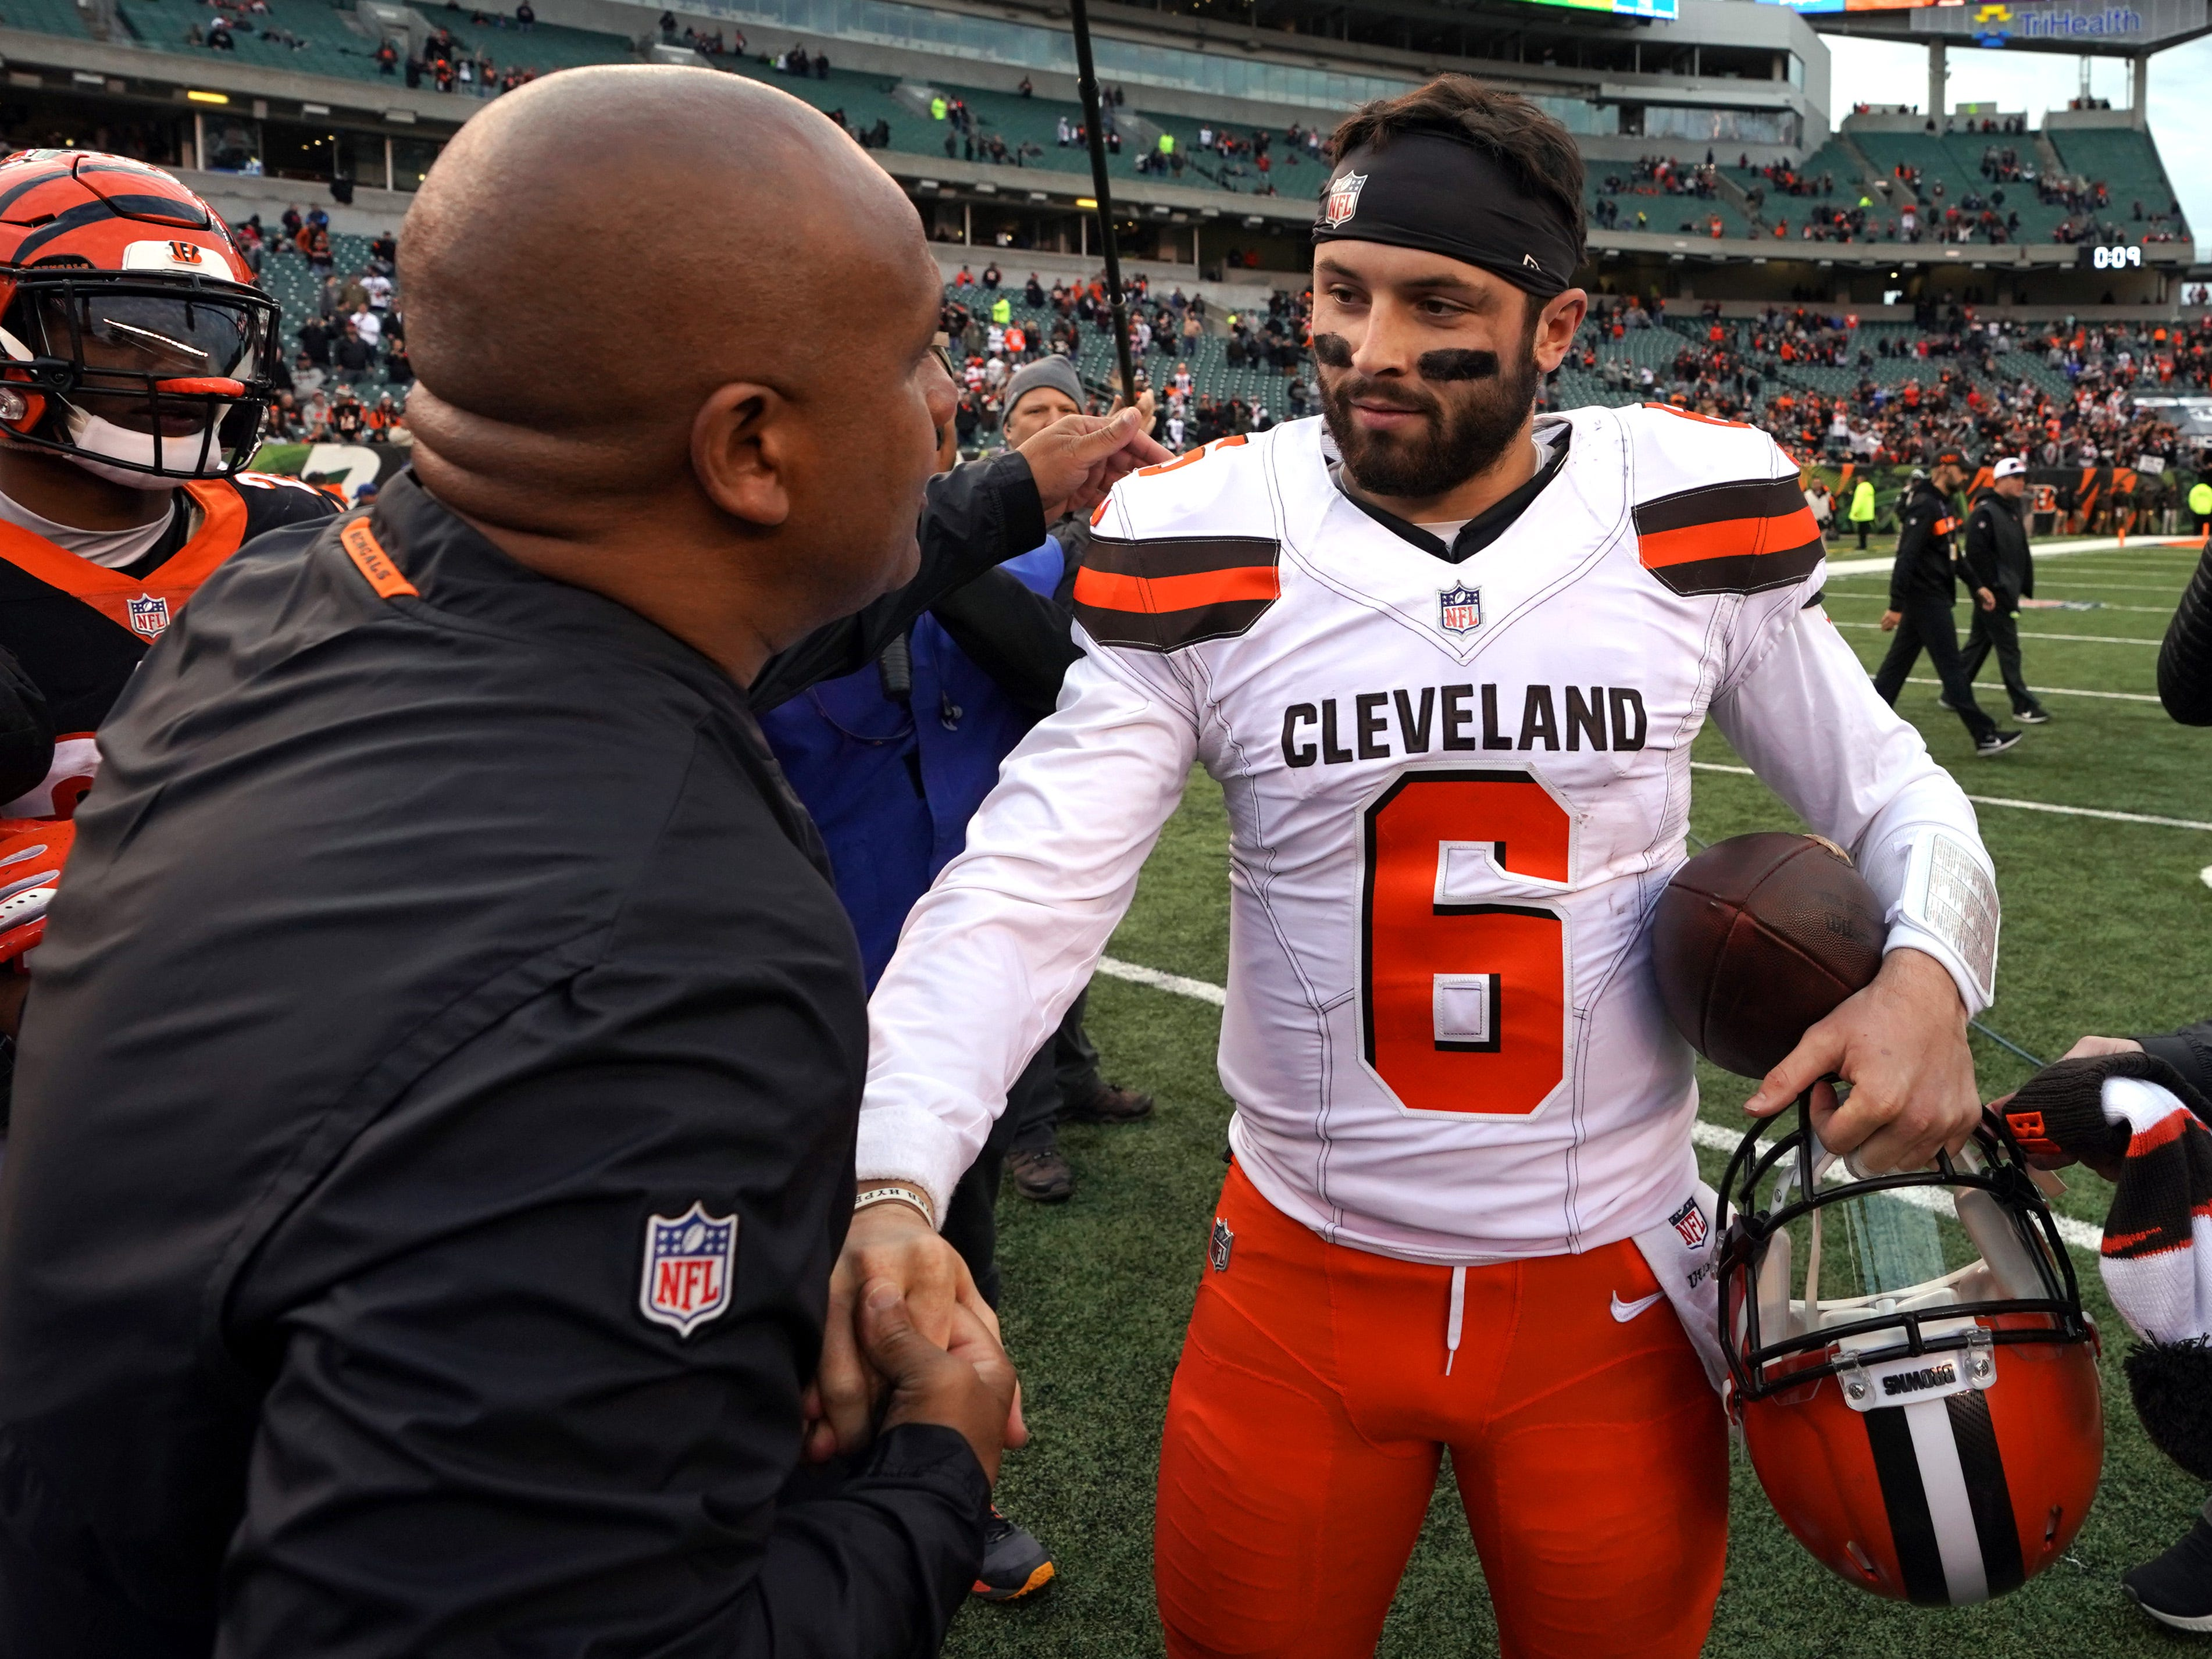 21. Browns (23): So maybe Baker Mayfield doesn't yet appreciate NFL's business side. But some Hue Jackson shade gives Cincy-Cleveland rivalry needed flair.